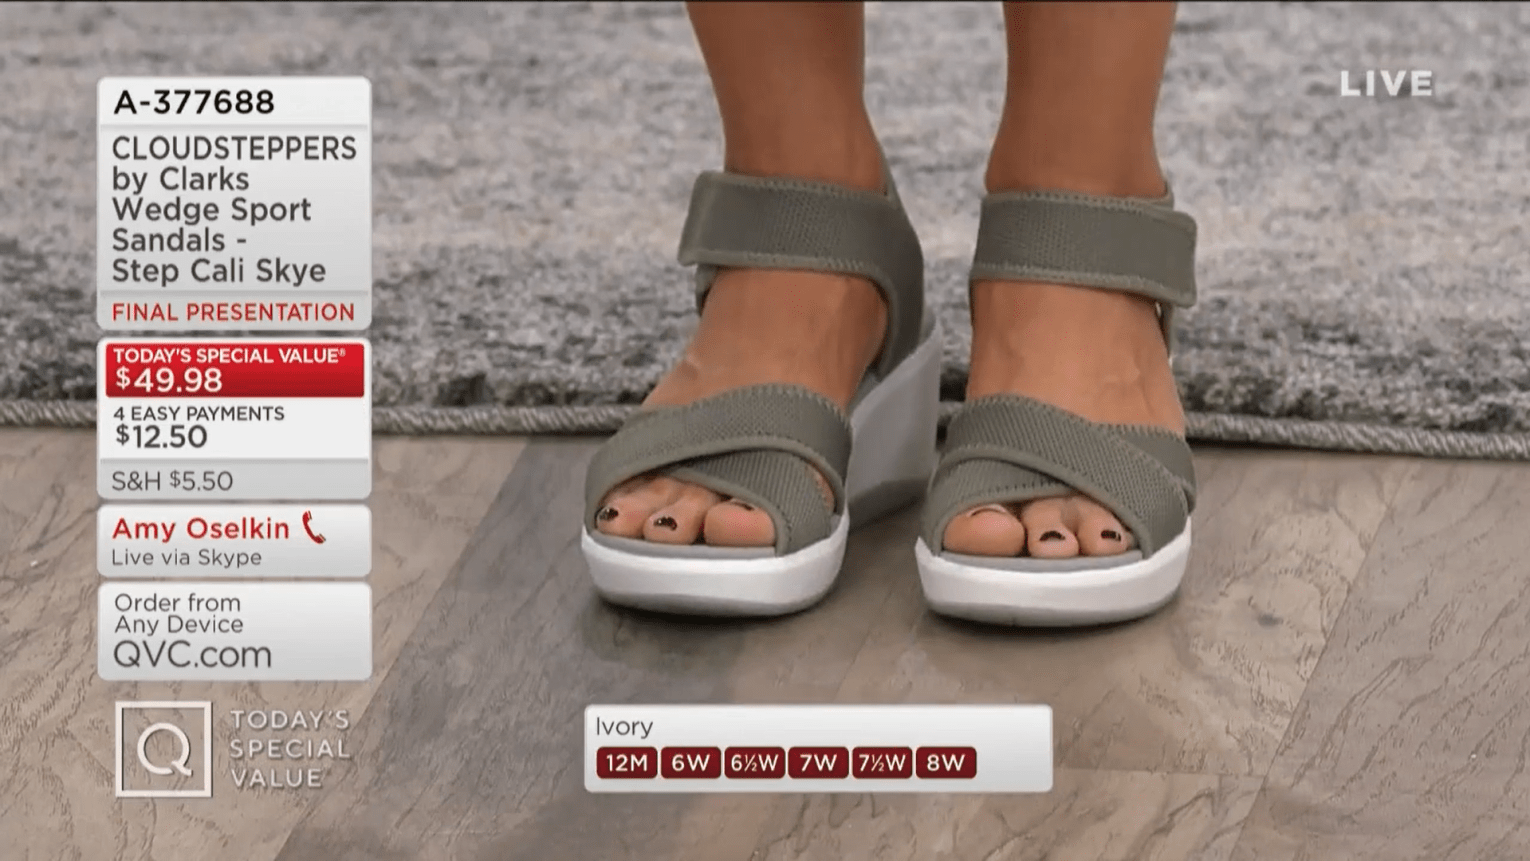 Close up of QVC show host Amy Stran's feet in Clarks wedge sandals.